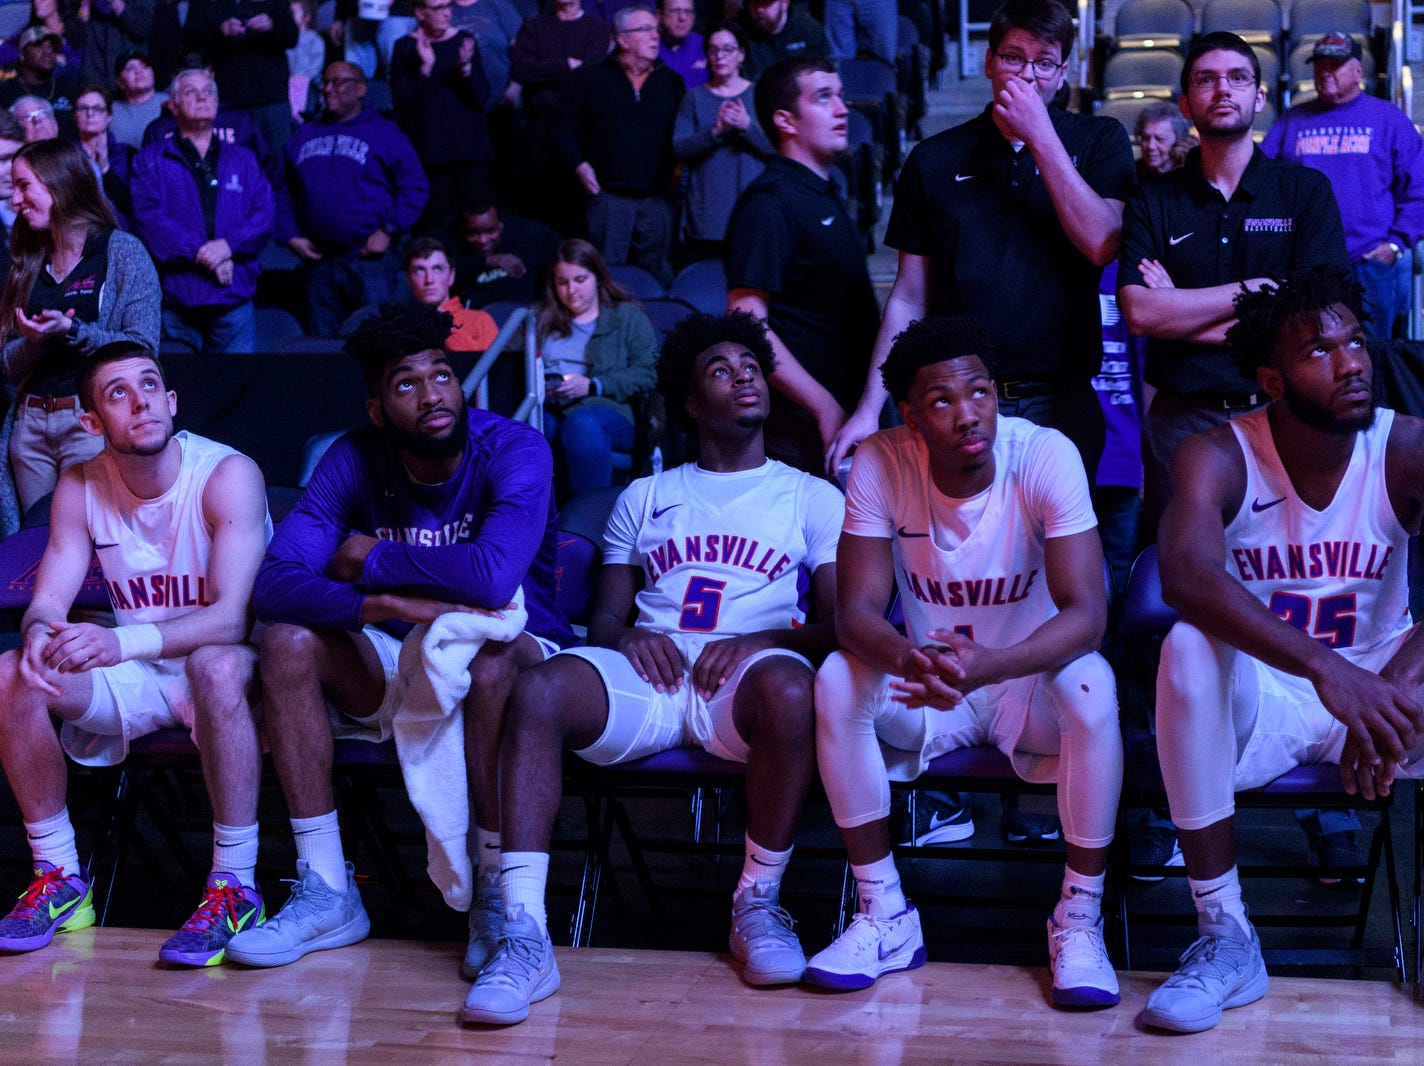 University of Evansville's Shea Feehan (21), K.J. Riley (33), Shamar Givance (5), Marty Hill (1) and  John Hall (35) wait for their names to be called during the starting line up announcement against the University of Wisconsin-Green Bay Phoenix at Ford Center in Evansville, Ind., Saturday, Dec. 22, 2018.